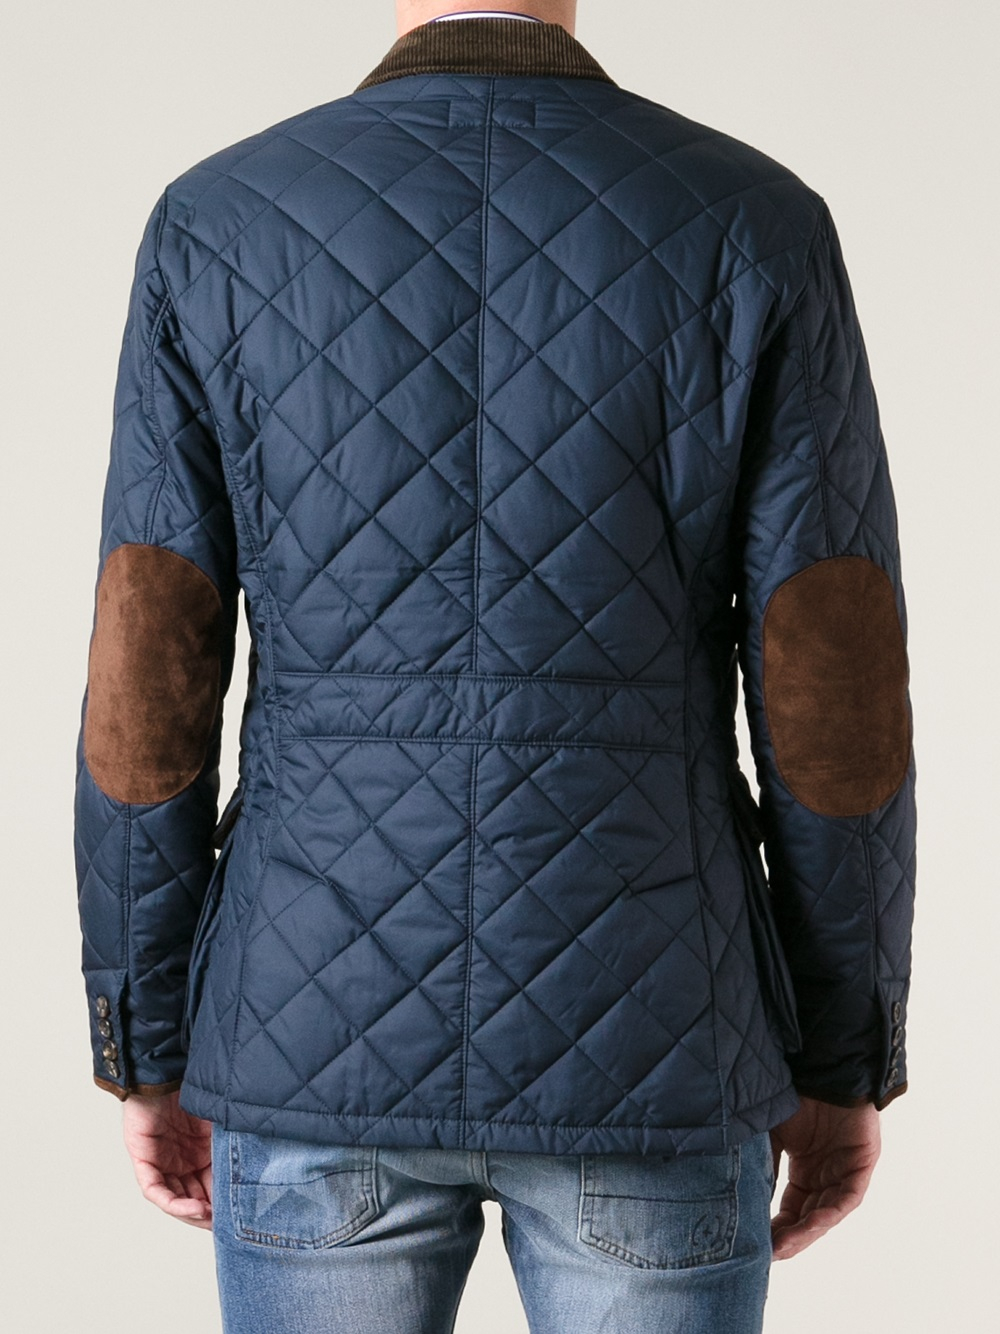 Polo Ralph Lauren Quilted Jacket in Blue for Men - Lyst